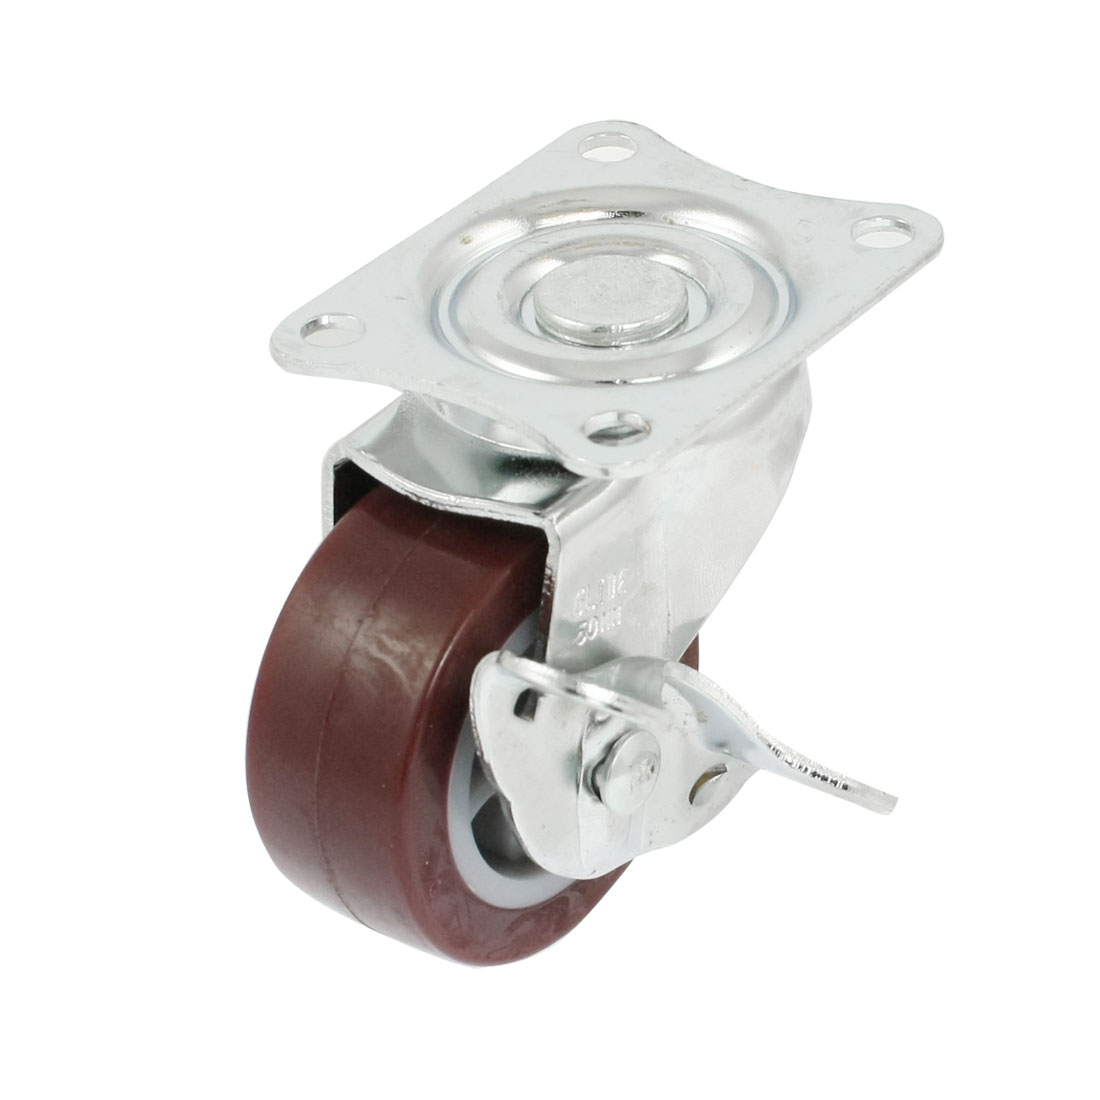 48mm-x-20mm-Light-Duty-Fixed-Type-Burgundy-PP-Industrial-Caster-Wheel